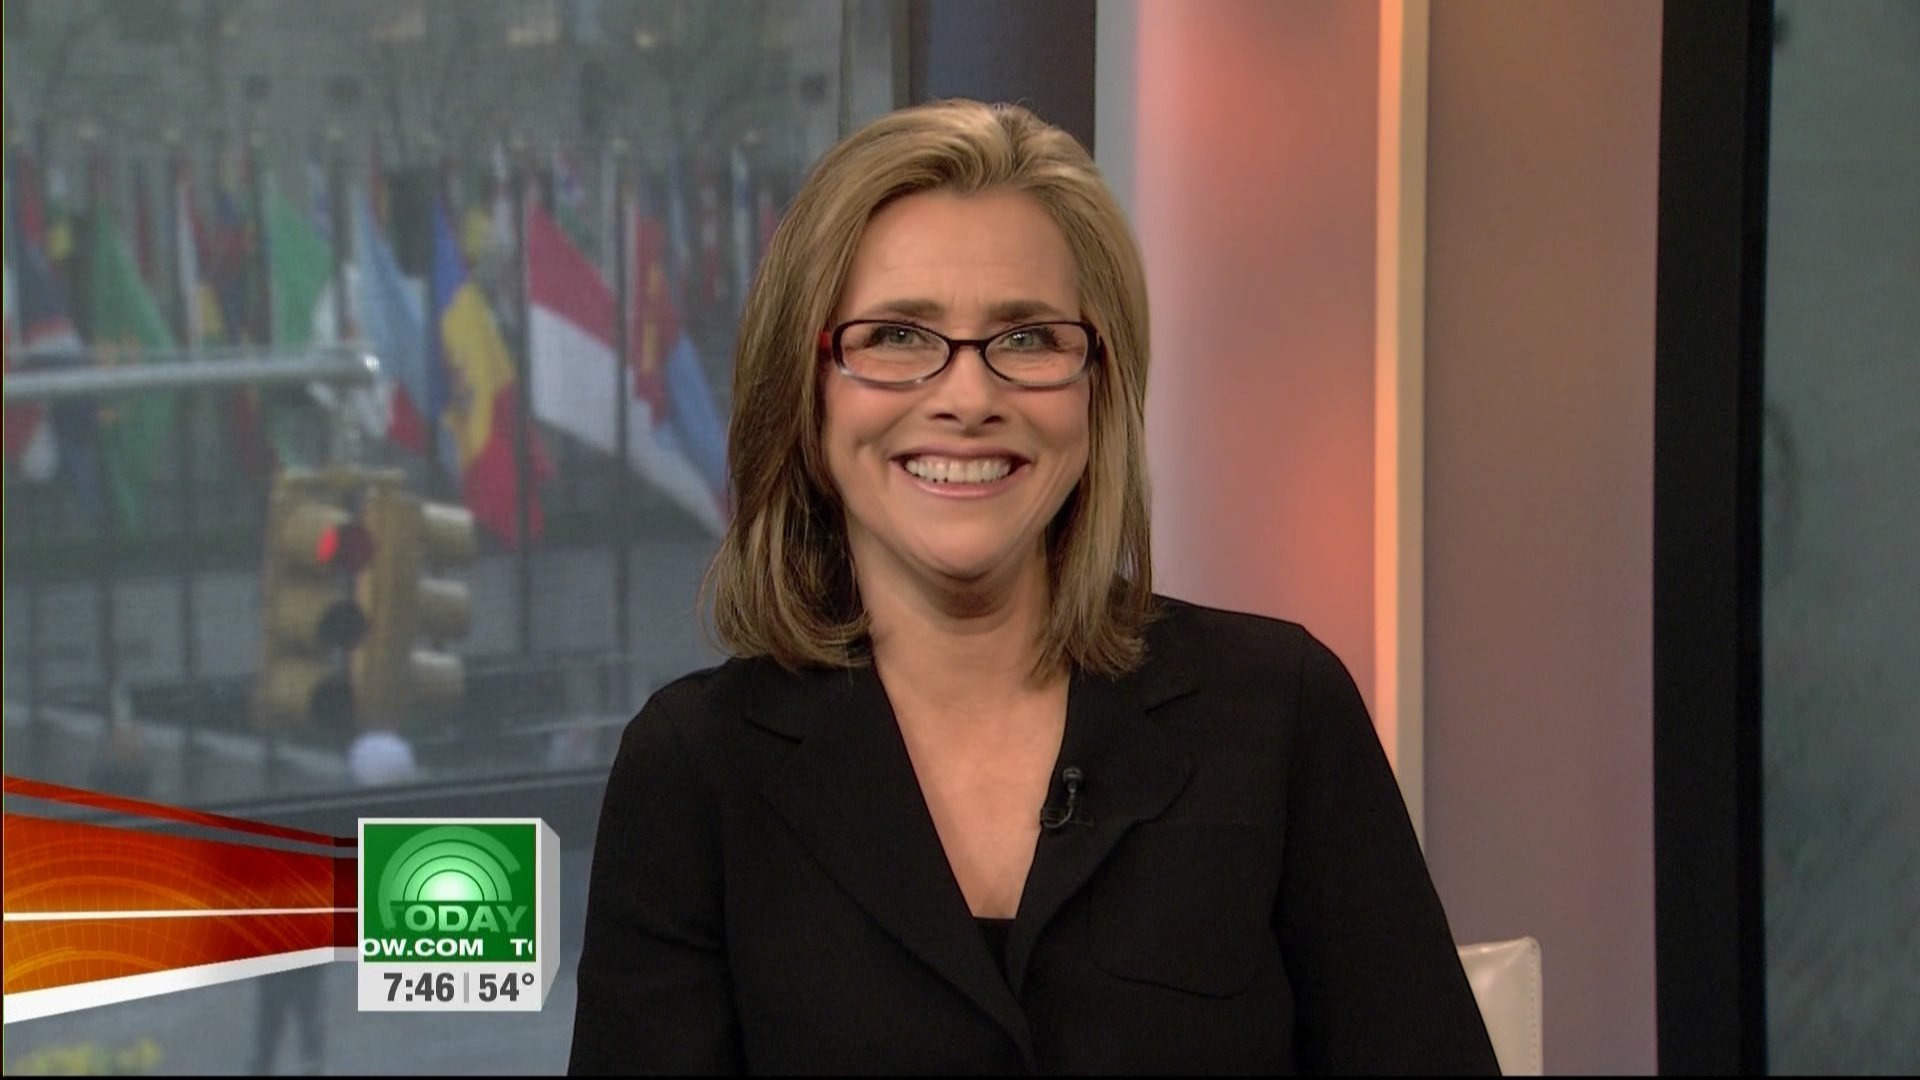 Glasses Meredithvieira S Blog